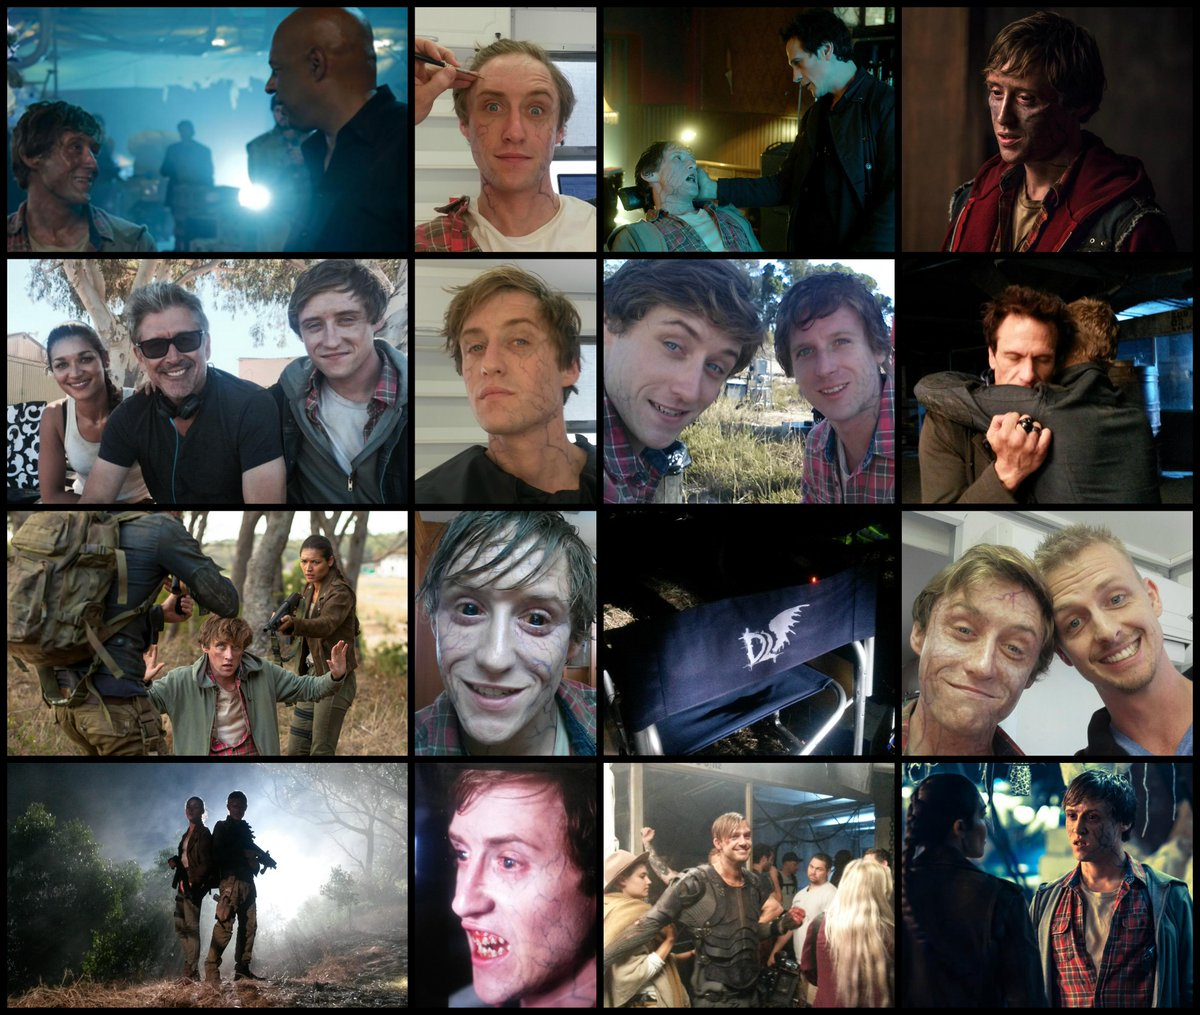 It's been a WILD ride @DominionSyfy & I'm so grateful! Thanks for everything @VaunWilmott @DeranSarafian. #Dominion http://t.co/JPwM7hrj4G